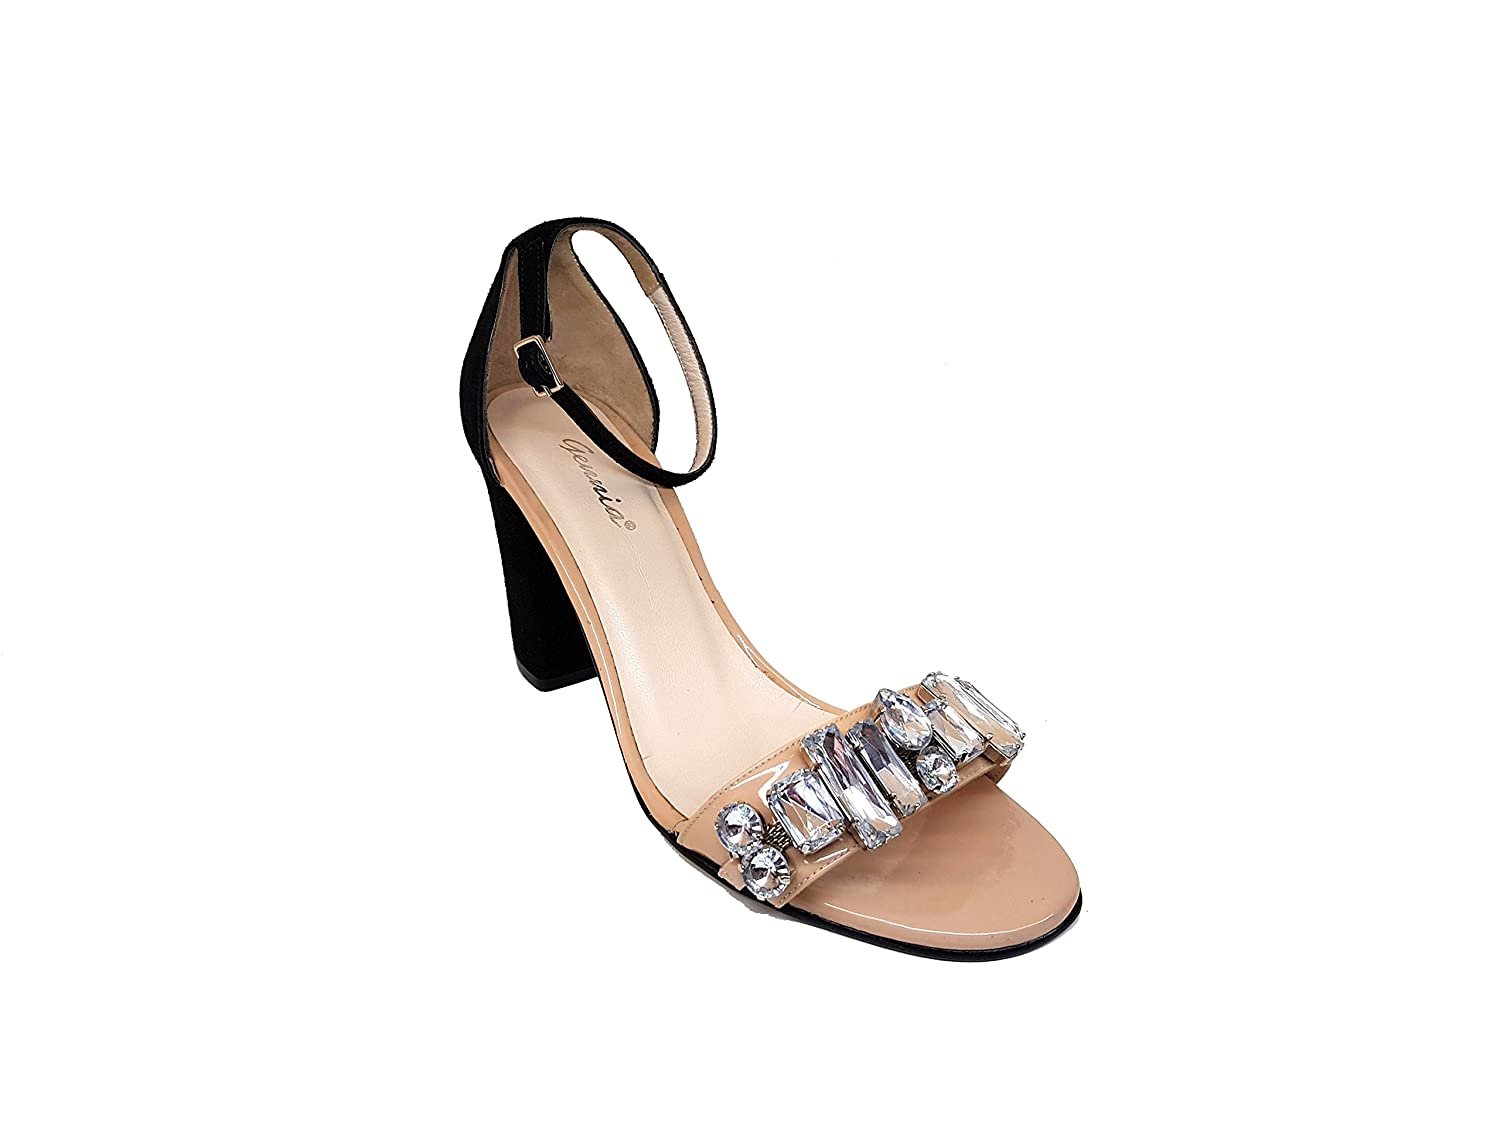 GENNIA FAISOL Women Leather Sandals Open Toe with Block Heel and Adornment with Crystal Stones